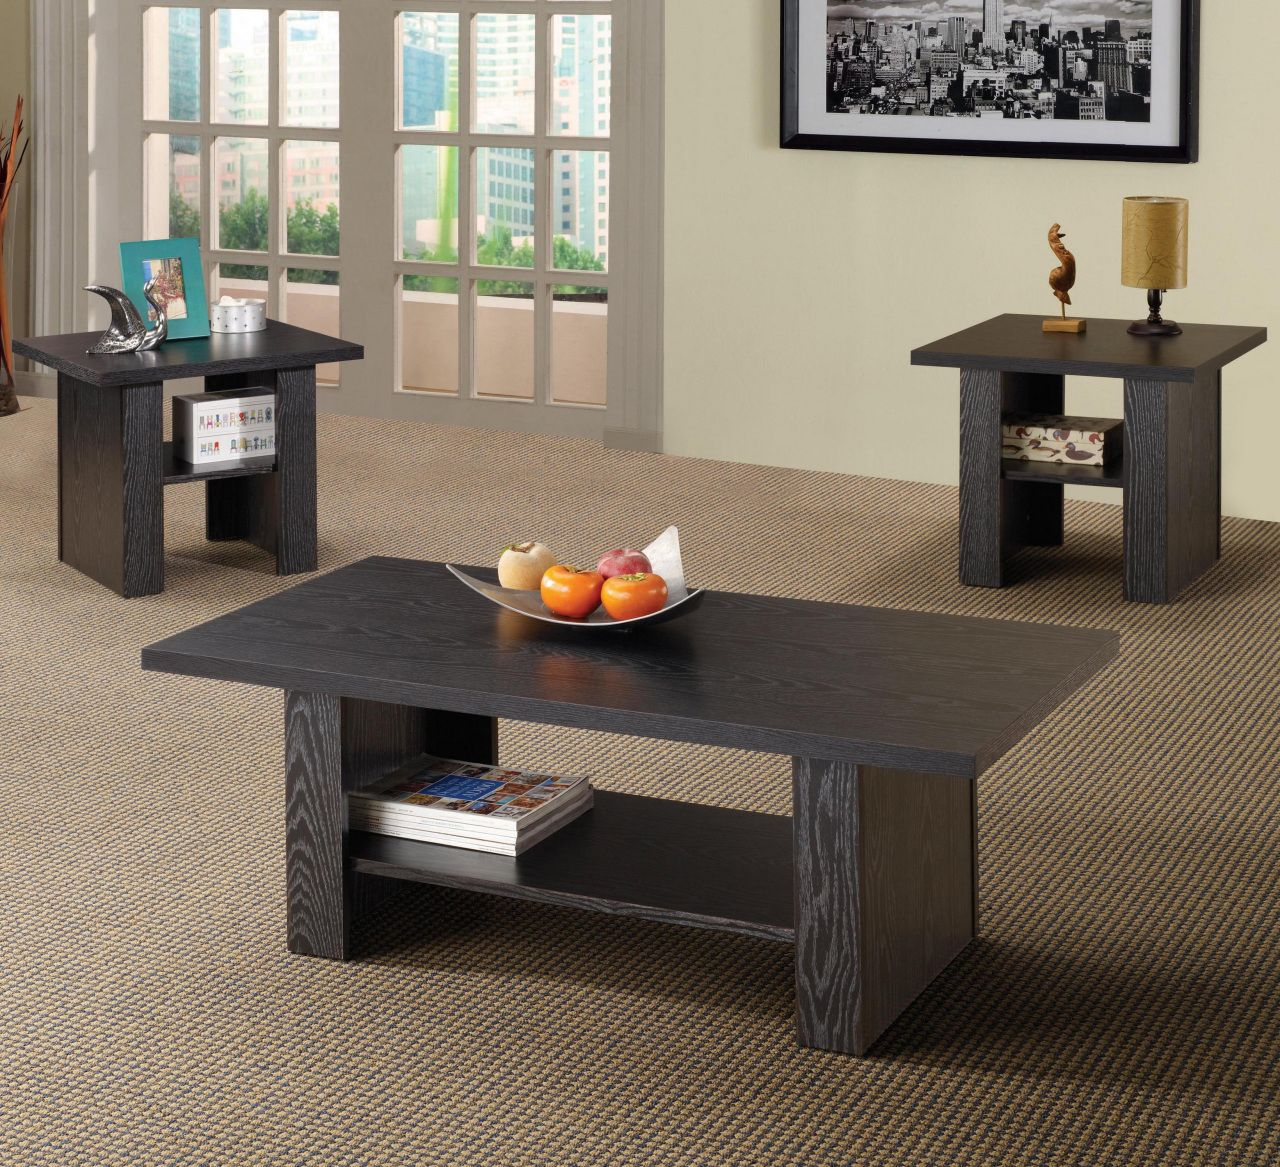 50 End Table Set Of 3 Modern Affordable Furniture Check More At Http Www Nikkitsfun Com End Tabl Coffee Table End Table Set Coffee Table Wood Coffee Table [ 1167 x 1280 Pixel ]